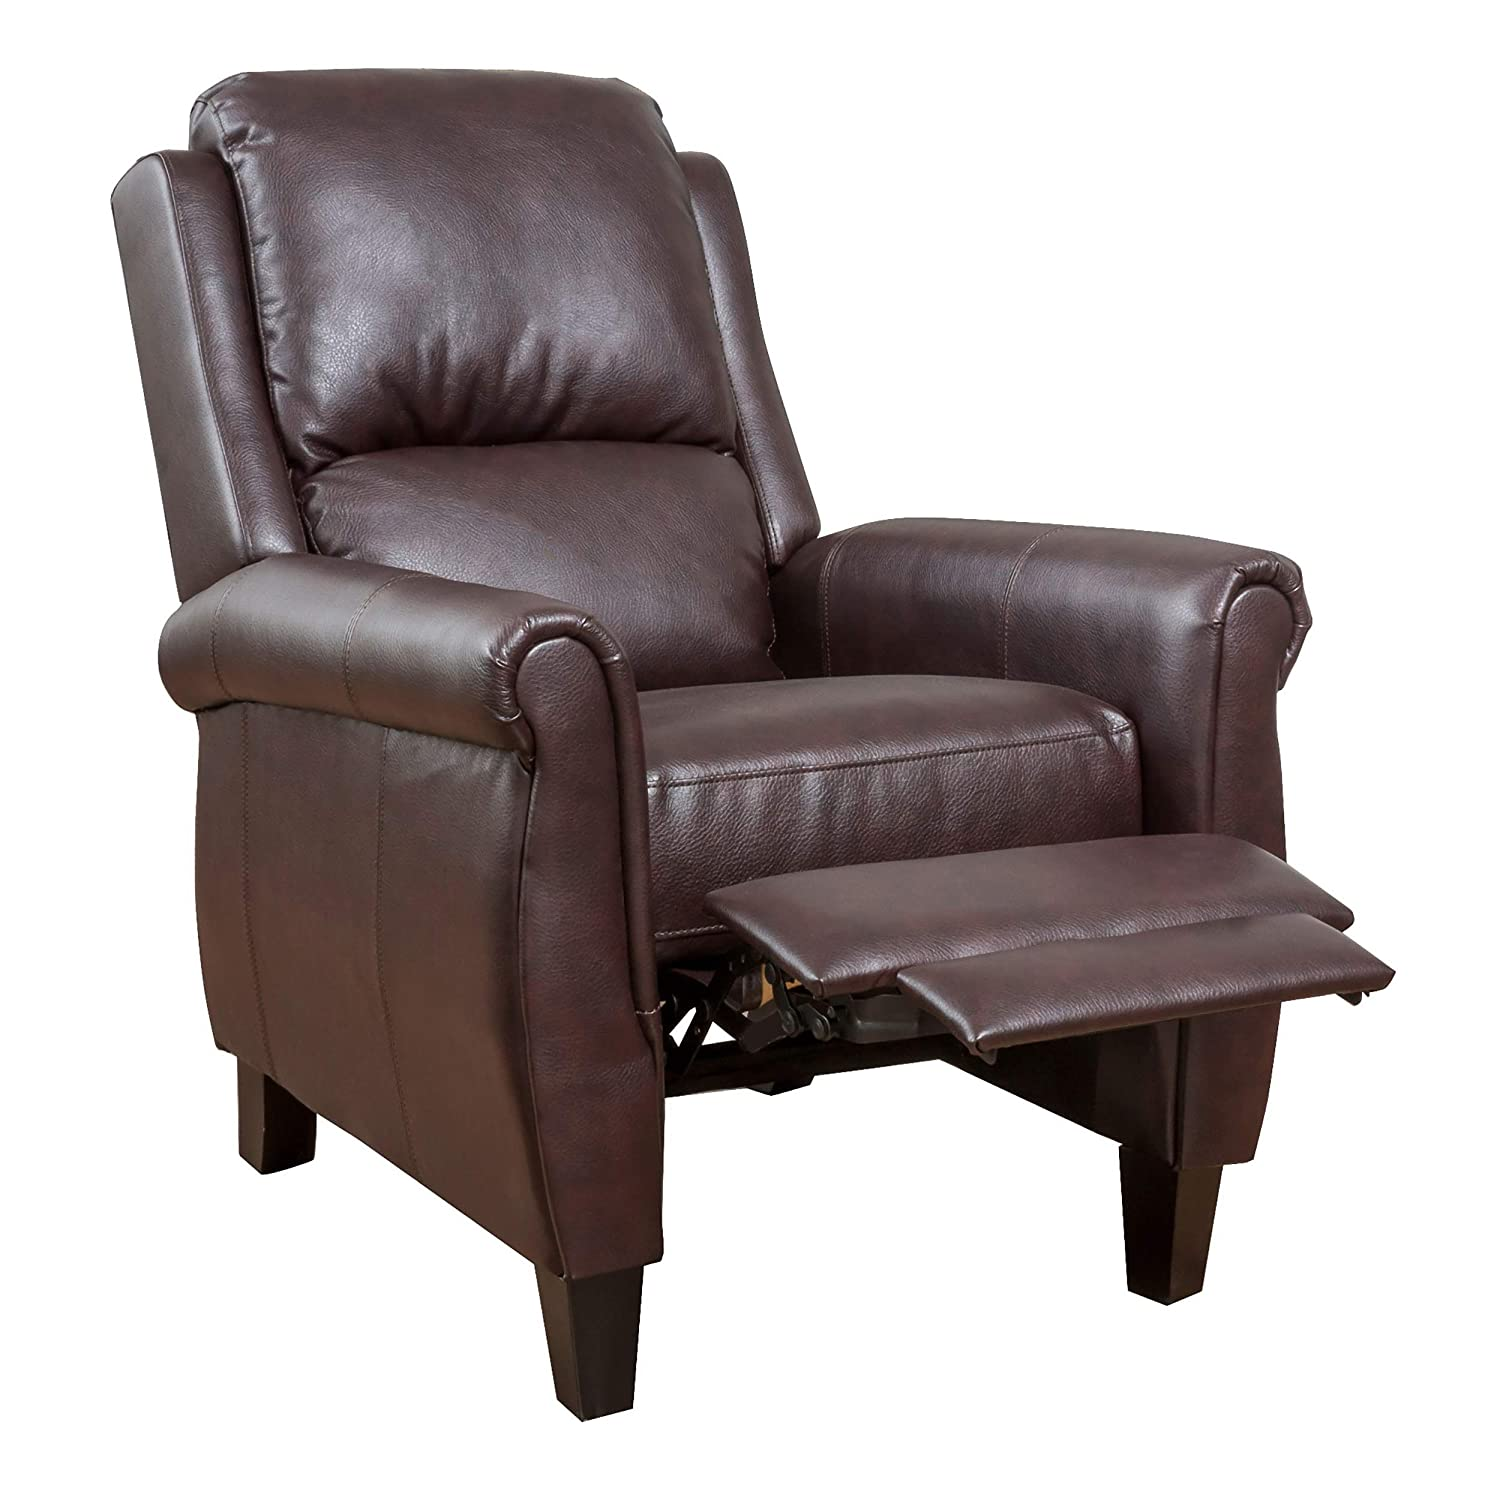 Christopher Knight Home 296596 Evan Pansy Recliner Club Chair, Burgundy Brown